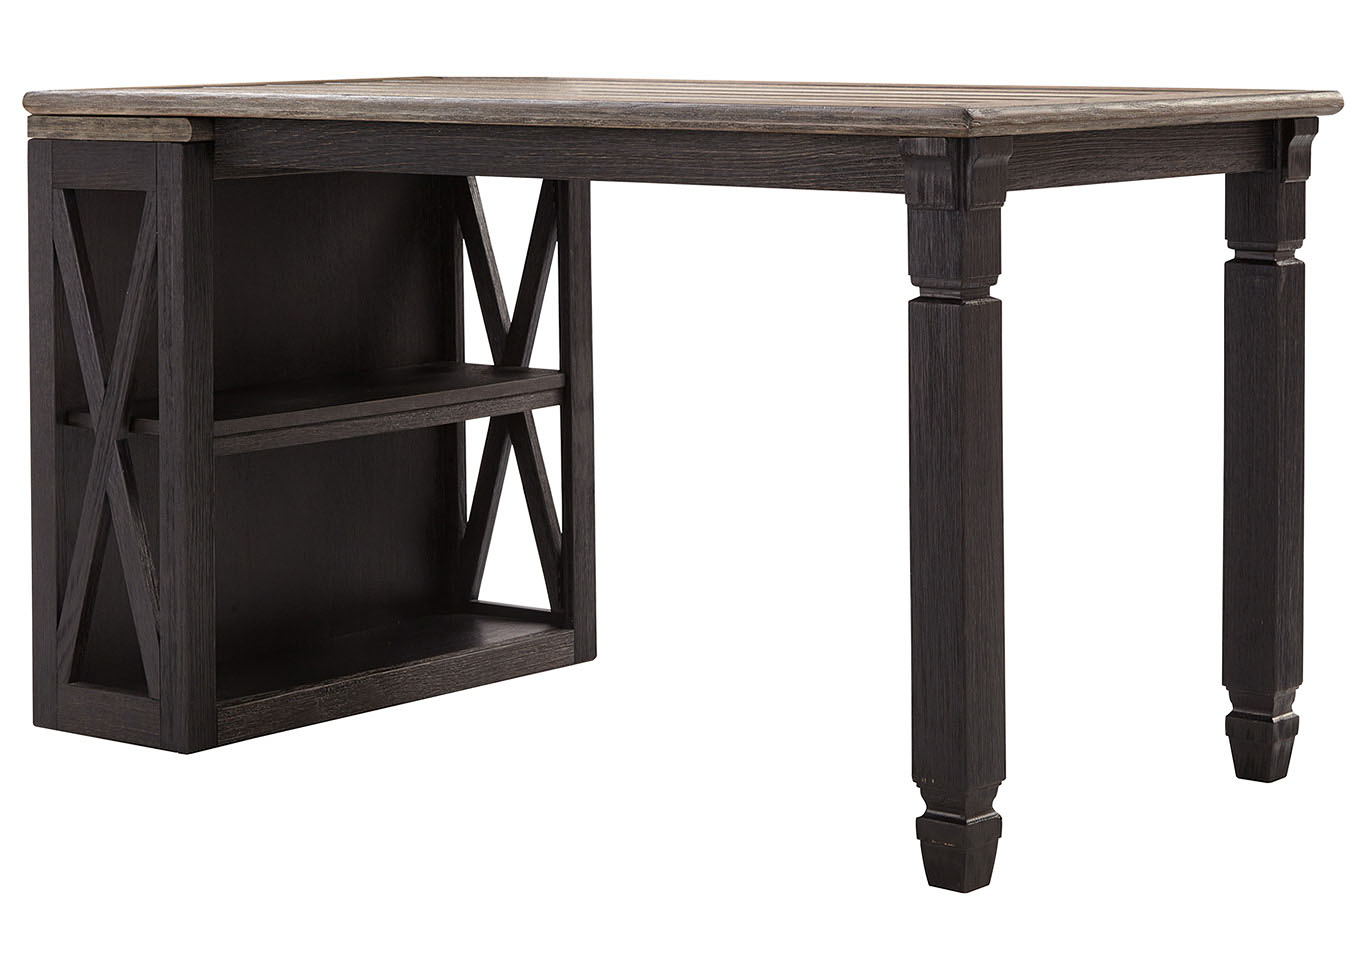 Tyler Creek Grayish Brown/Black Medium Bookcase w/Desk Return,Signature Design By Ashley